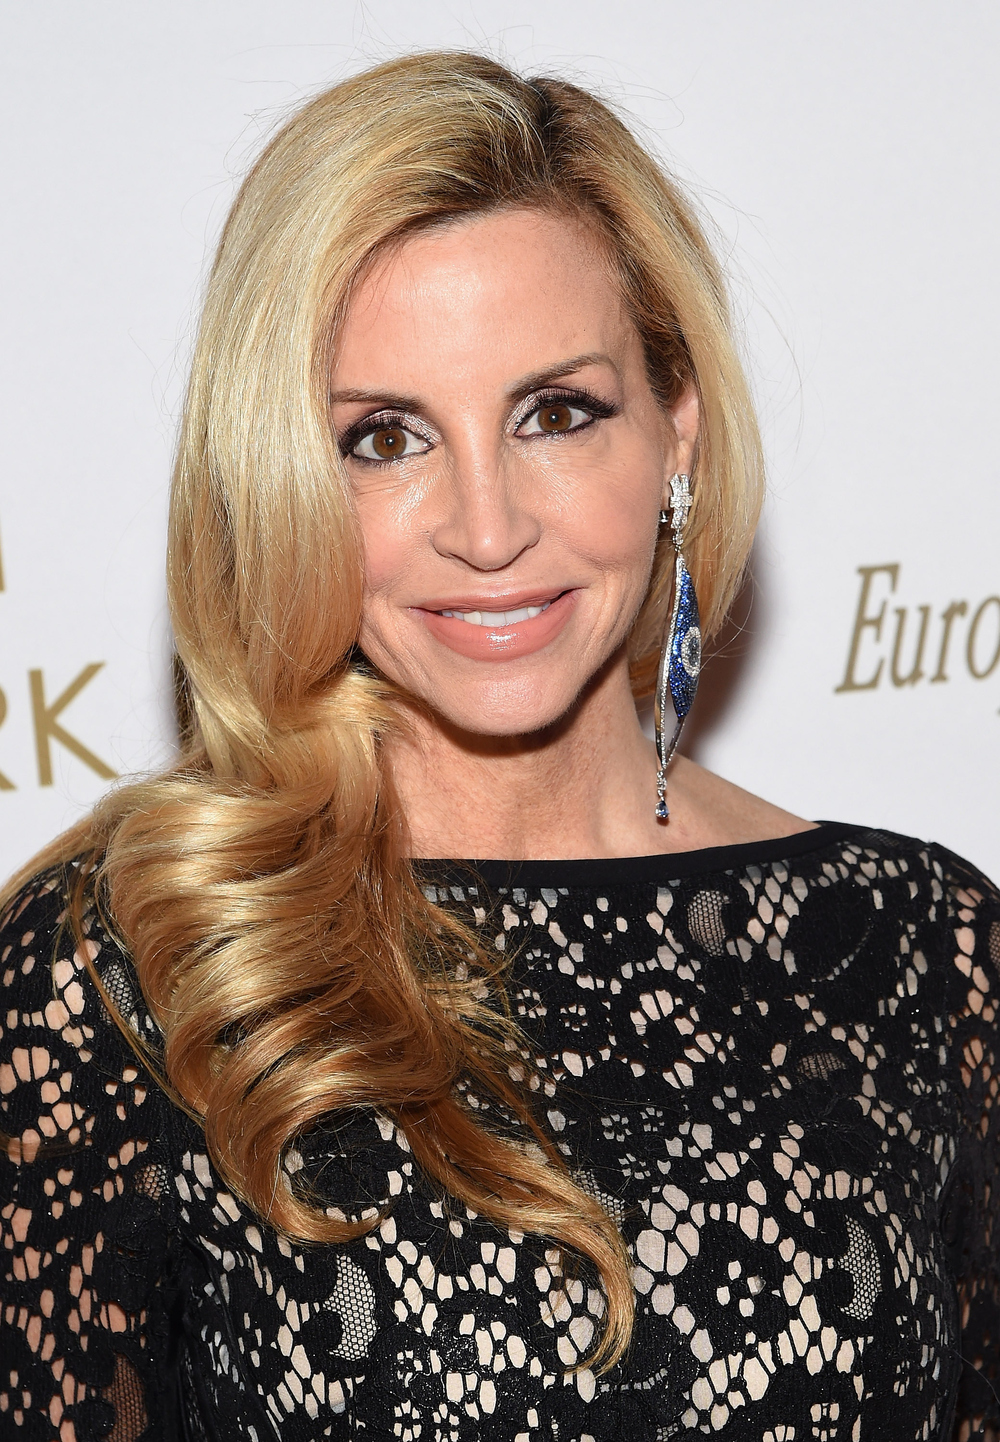 The New York Ball: The 20th Anniversary Benefit For The European School Of Economics - Arrivals